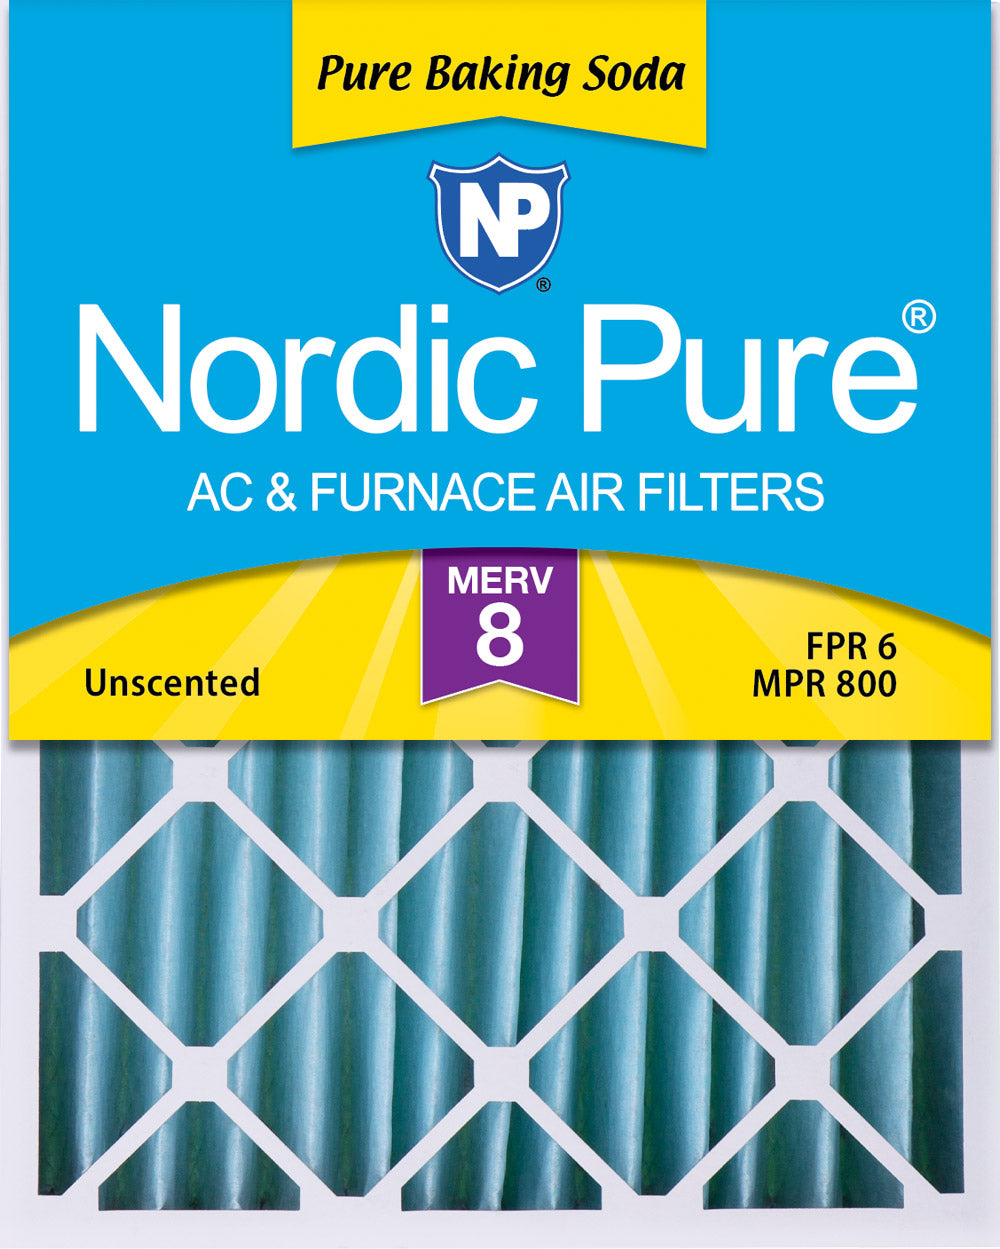 16x20x4 (3 5/8) Pure Baking Soda Odor Deodorizing AC Air Filters 1 Pack